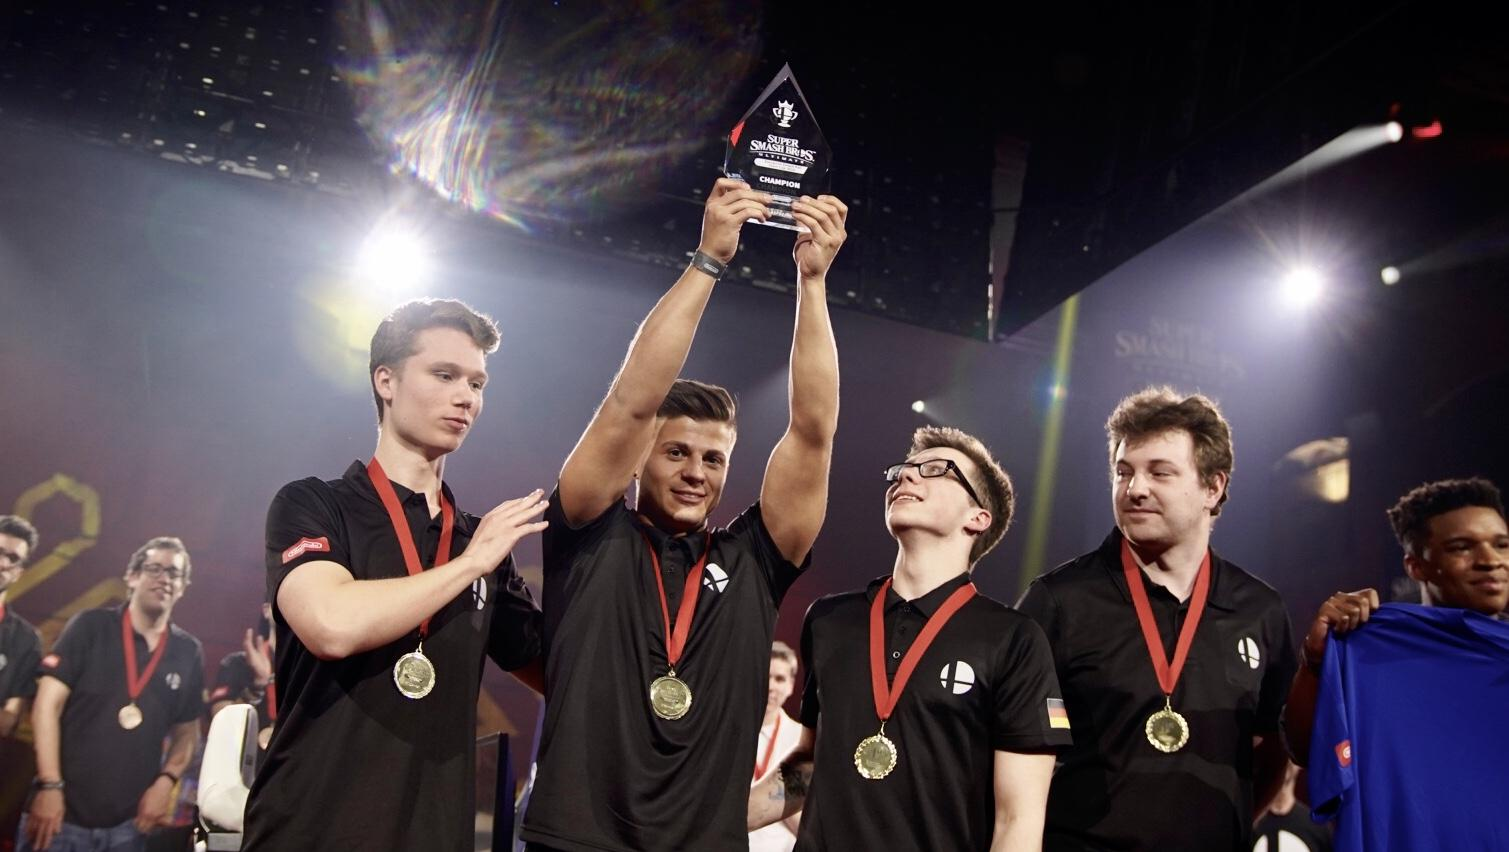 Grand final 6 Team Ehre Germany lifts the trophy